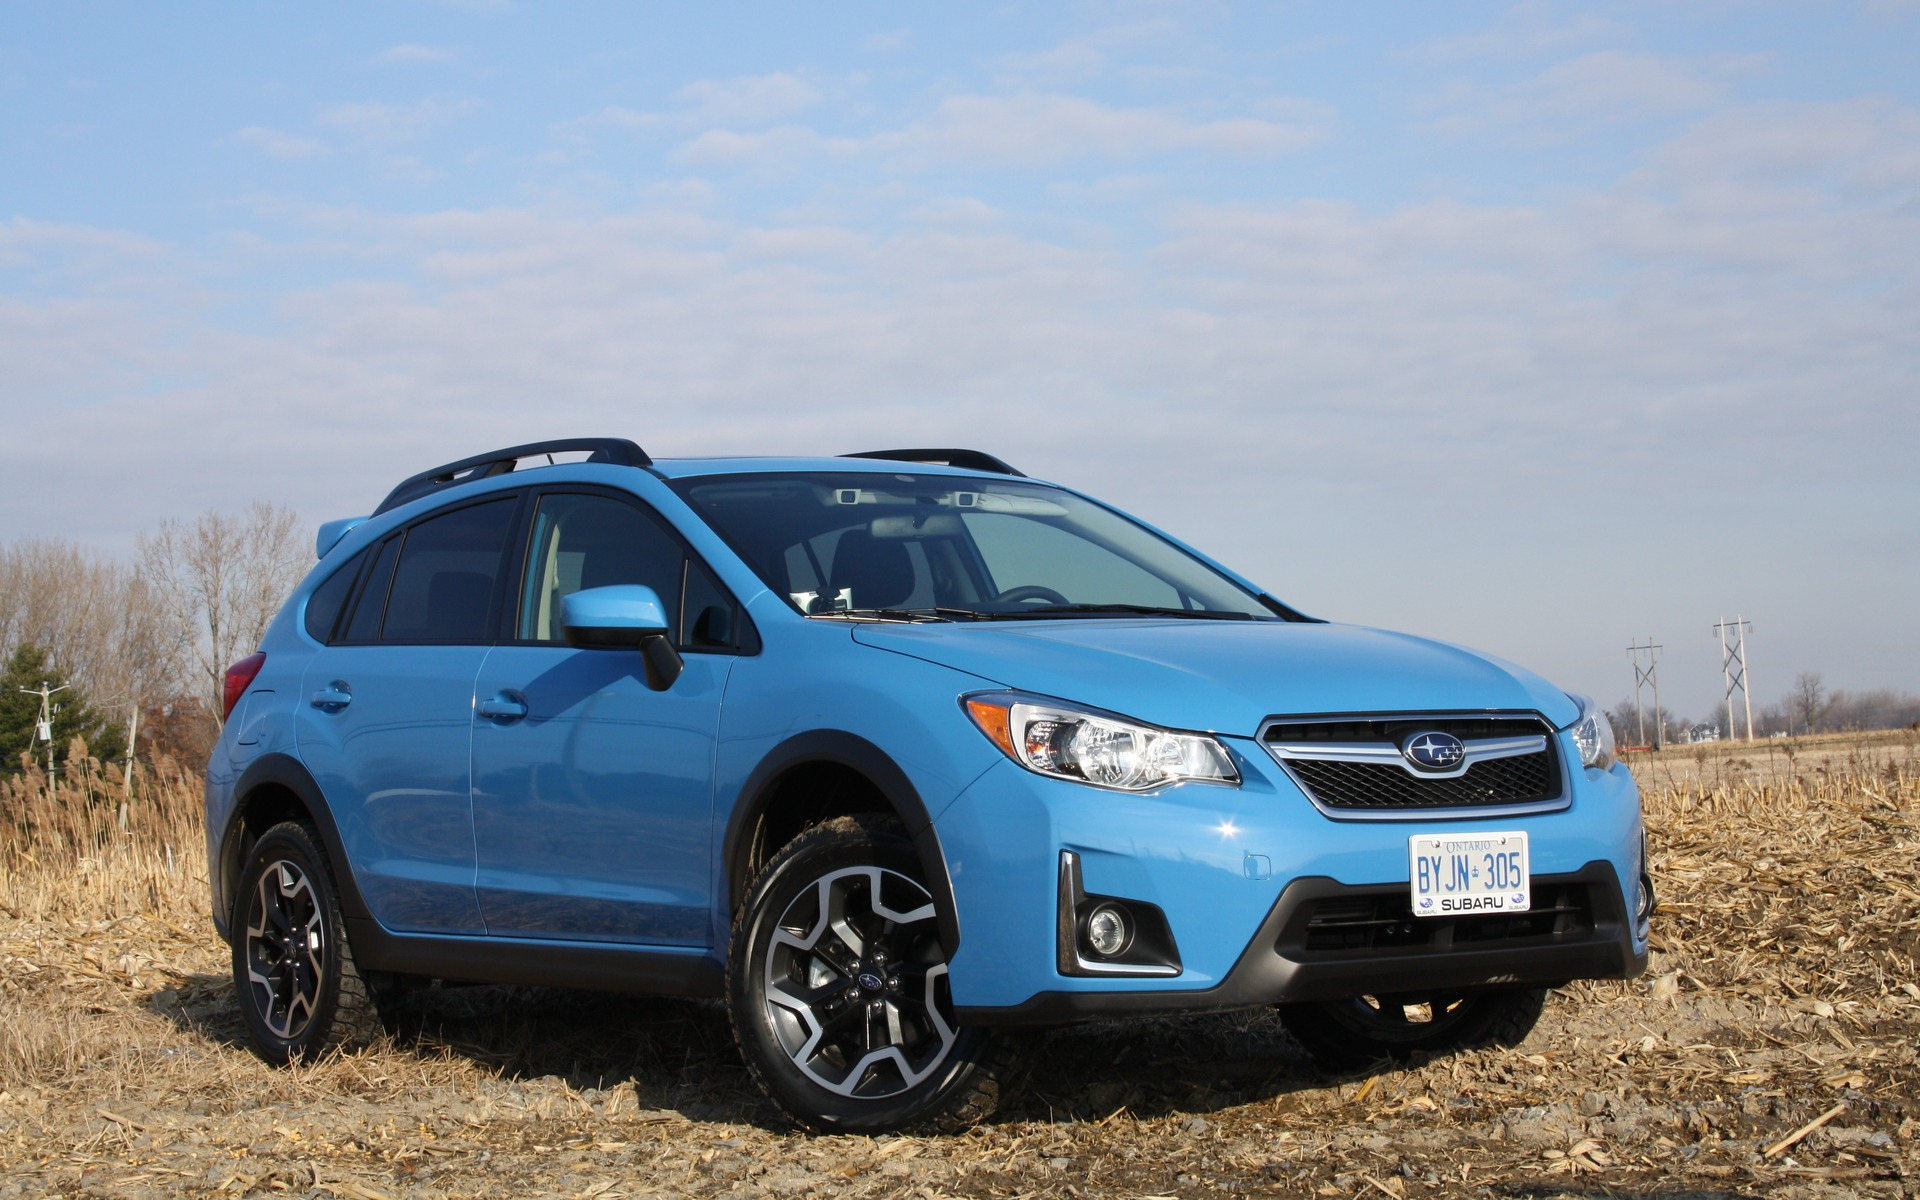 The Hyper Blue paint is now offered on the 2016 Subaru Crosstrek